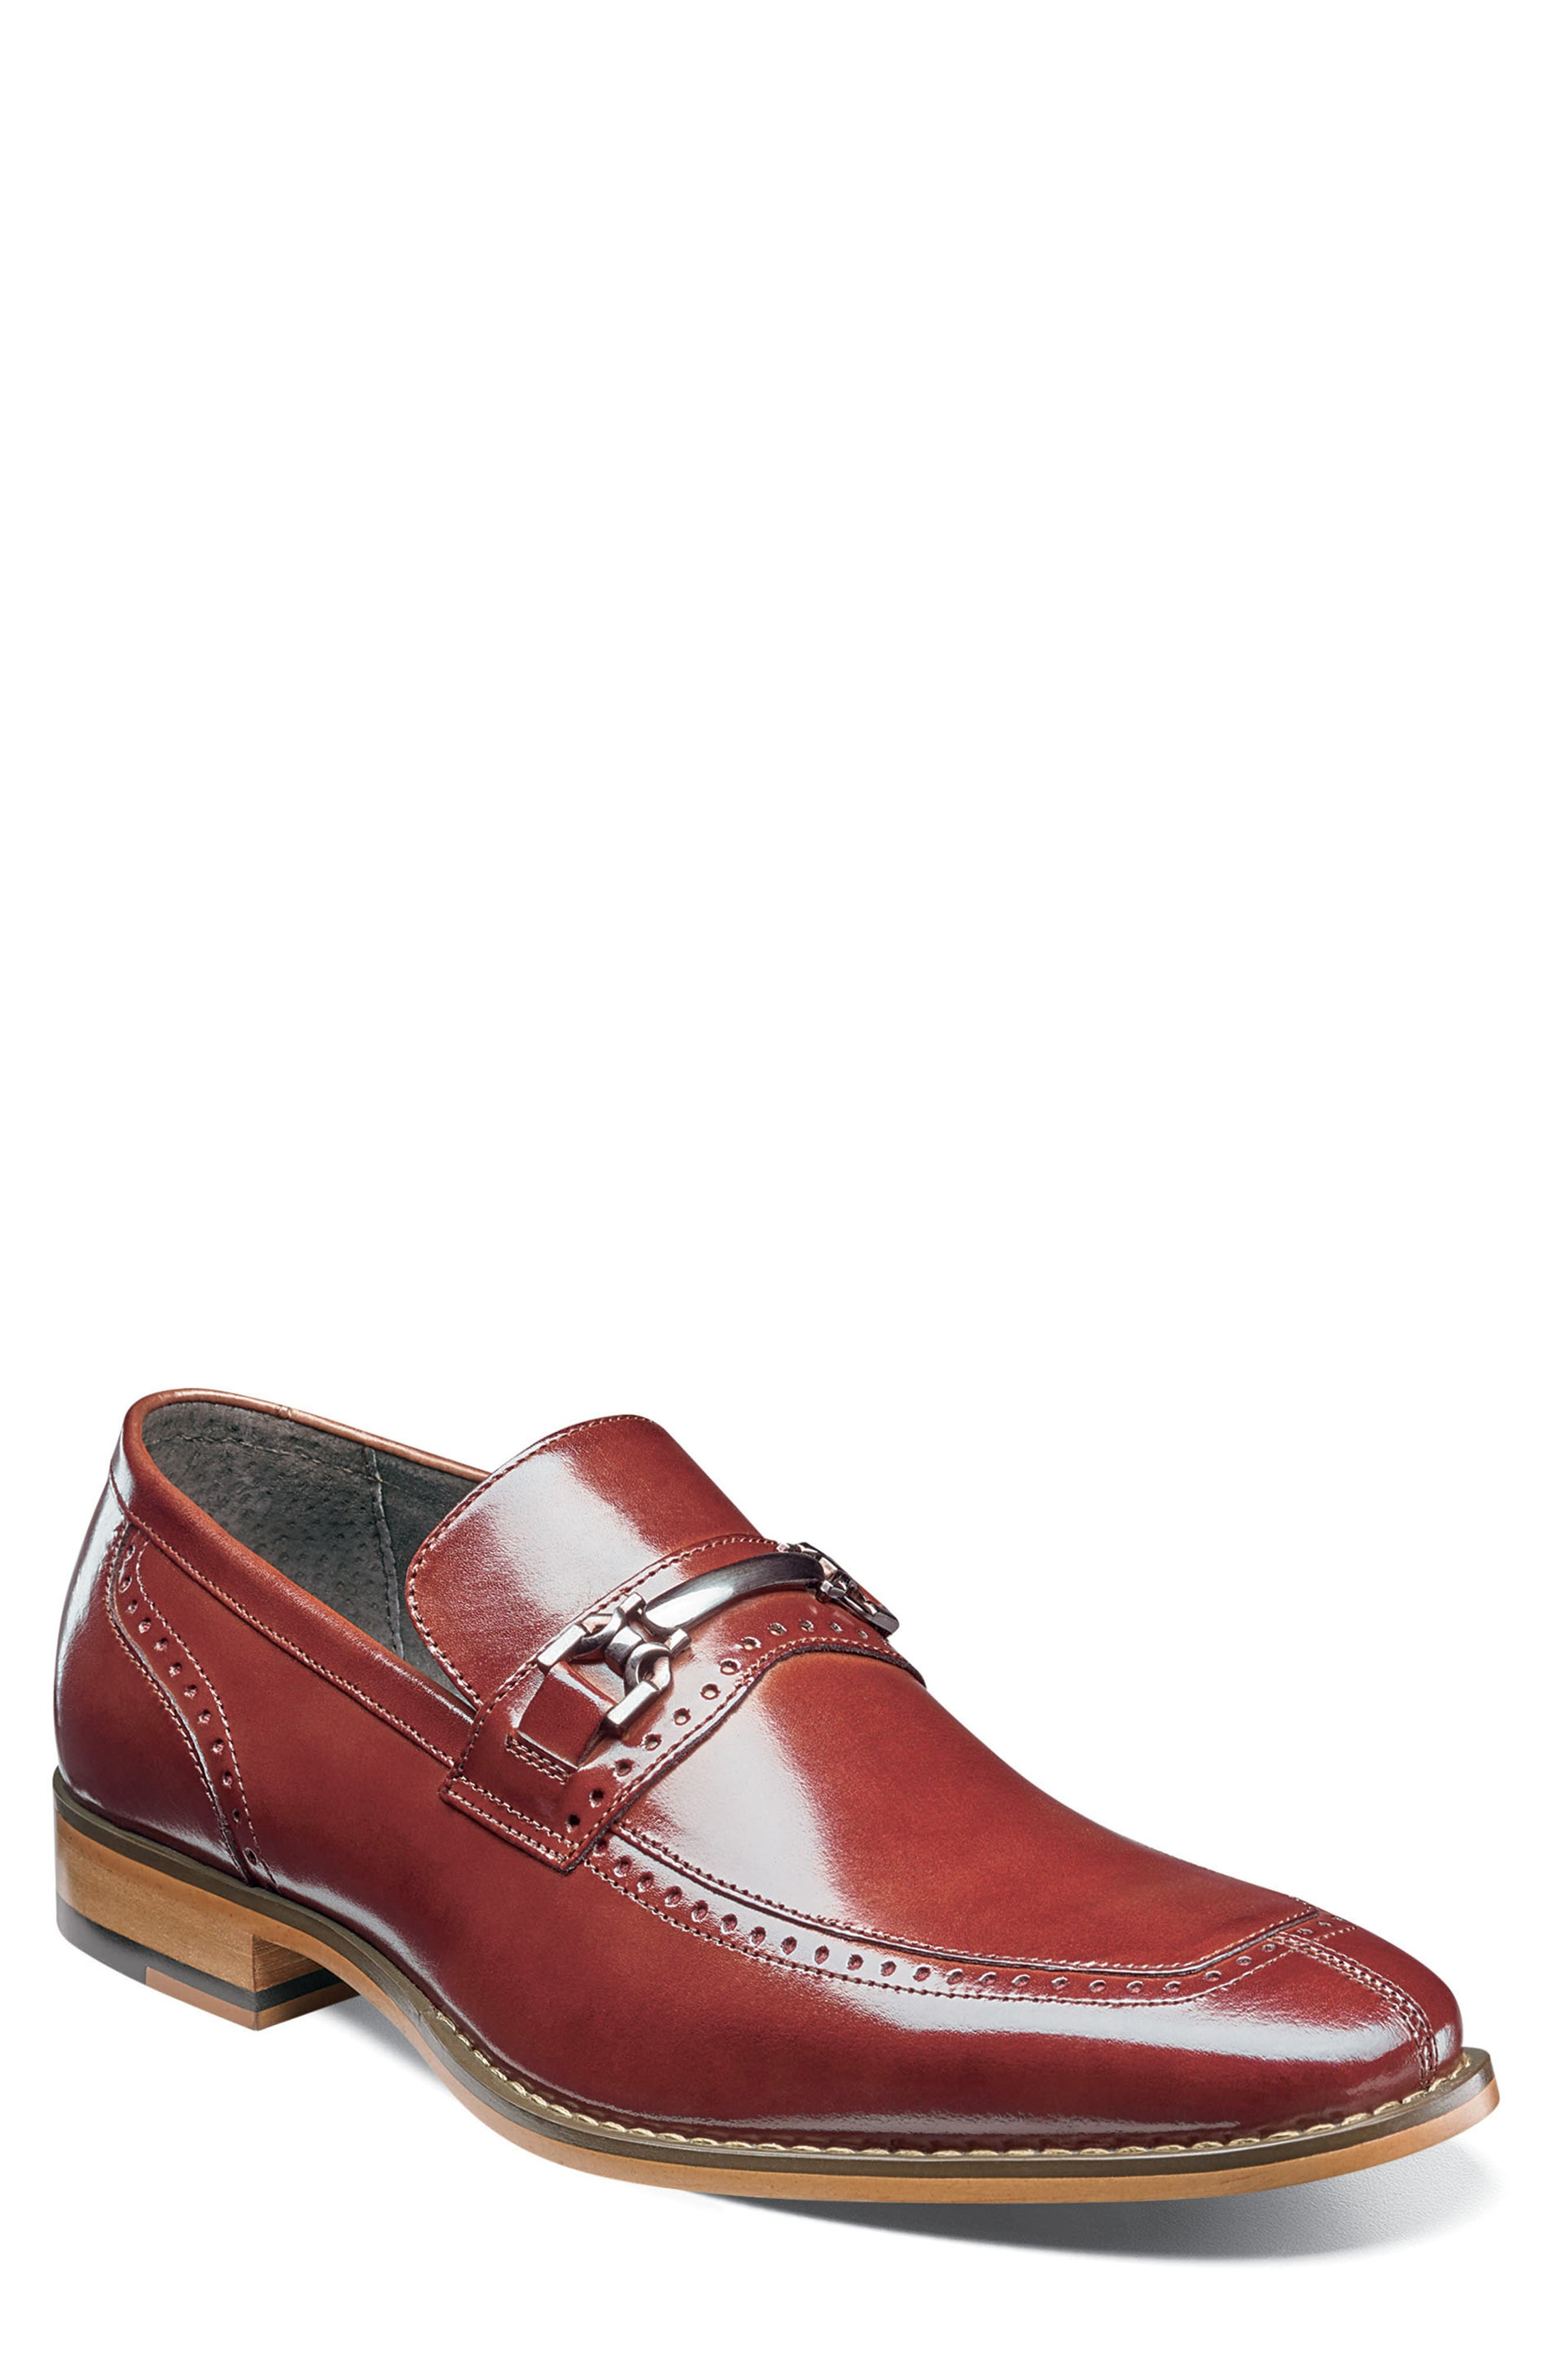 Tanner Brogued Bit Loafer,                             Main thumbnail 1, color,                             COGNAC LEATHER